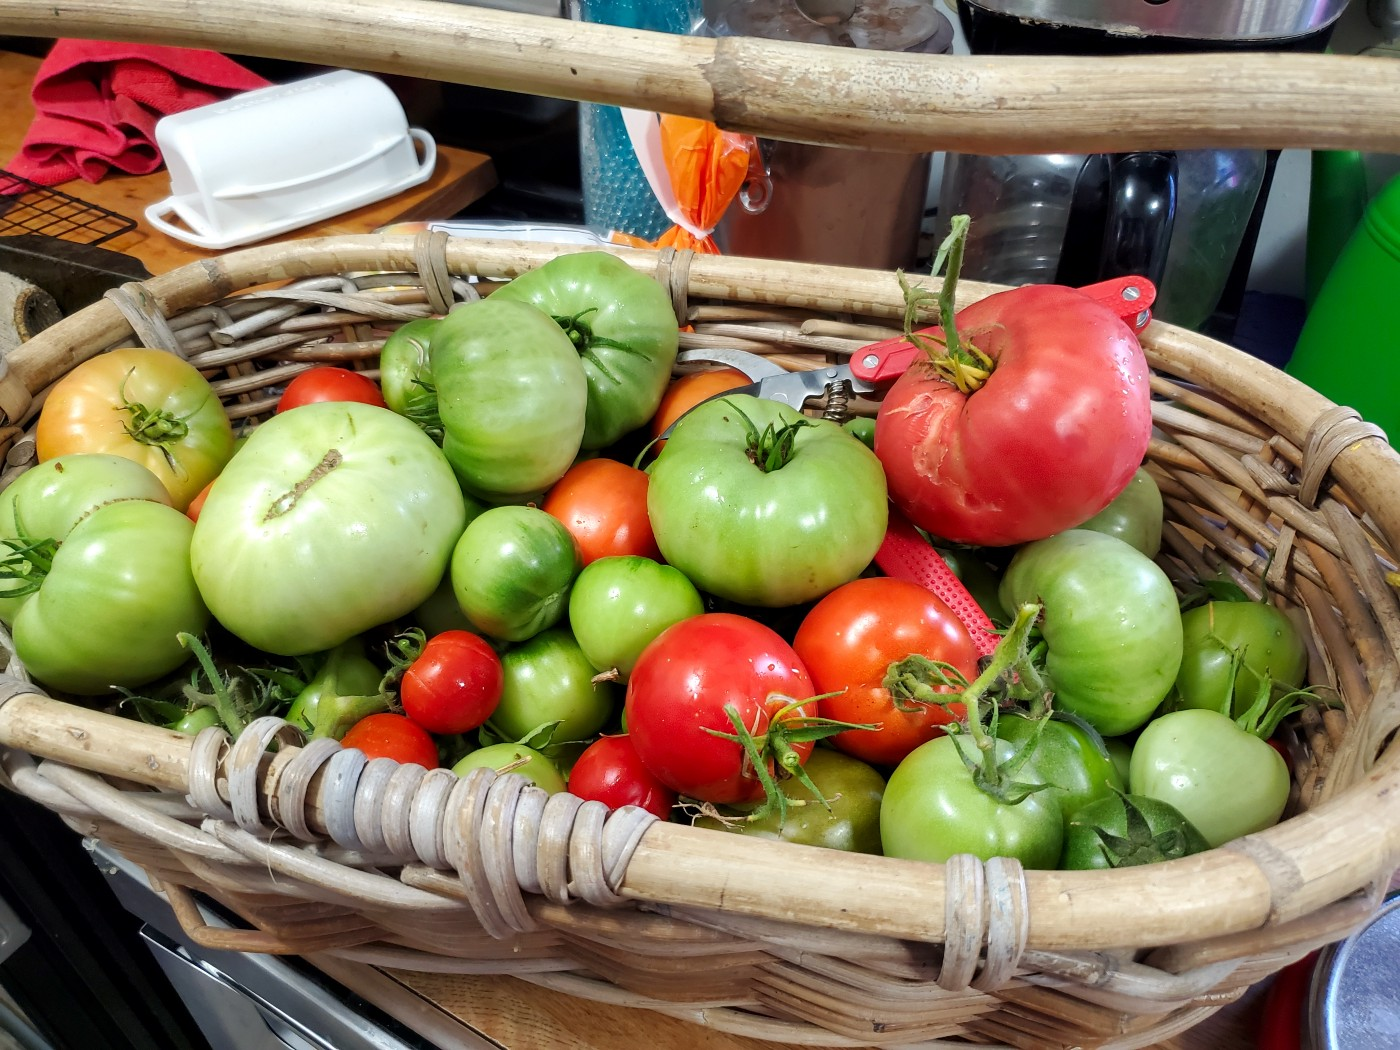 Wicker basker with a handle filled with several varieties of tomatoes in various stages of ripeness.